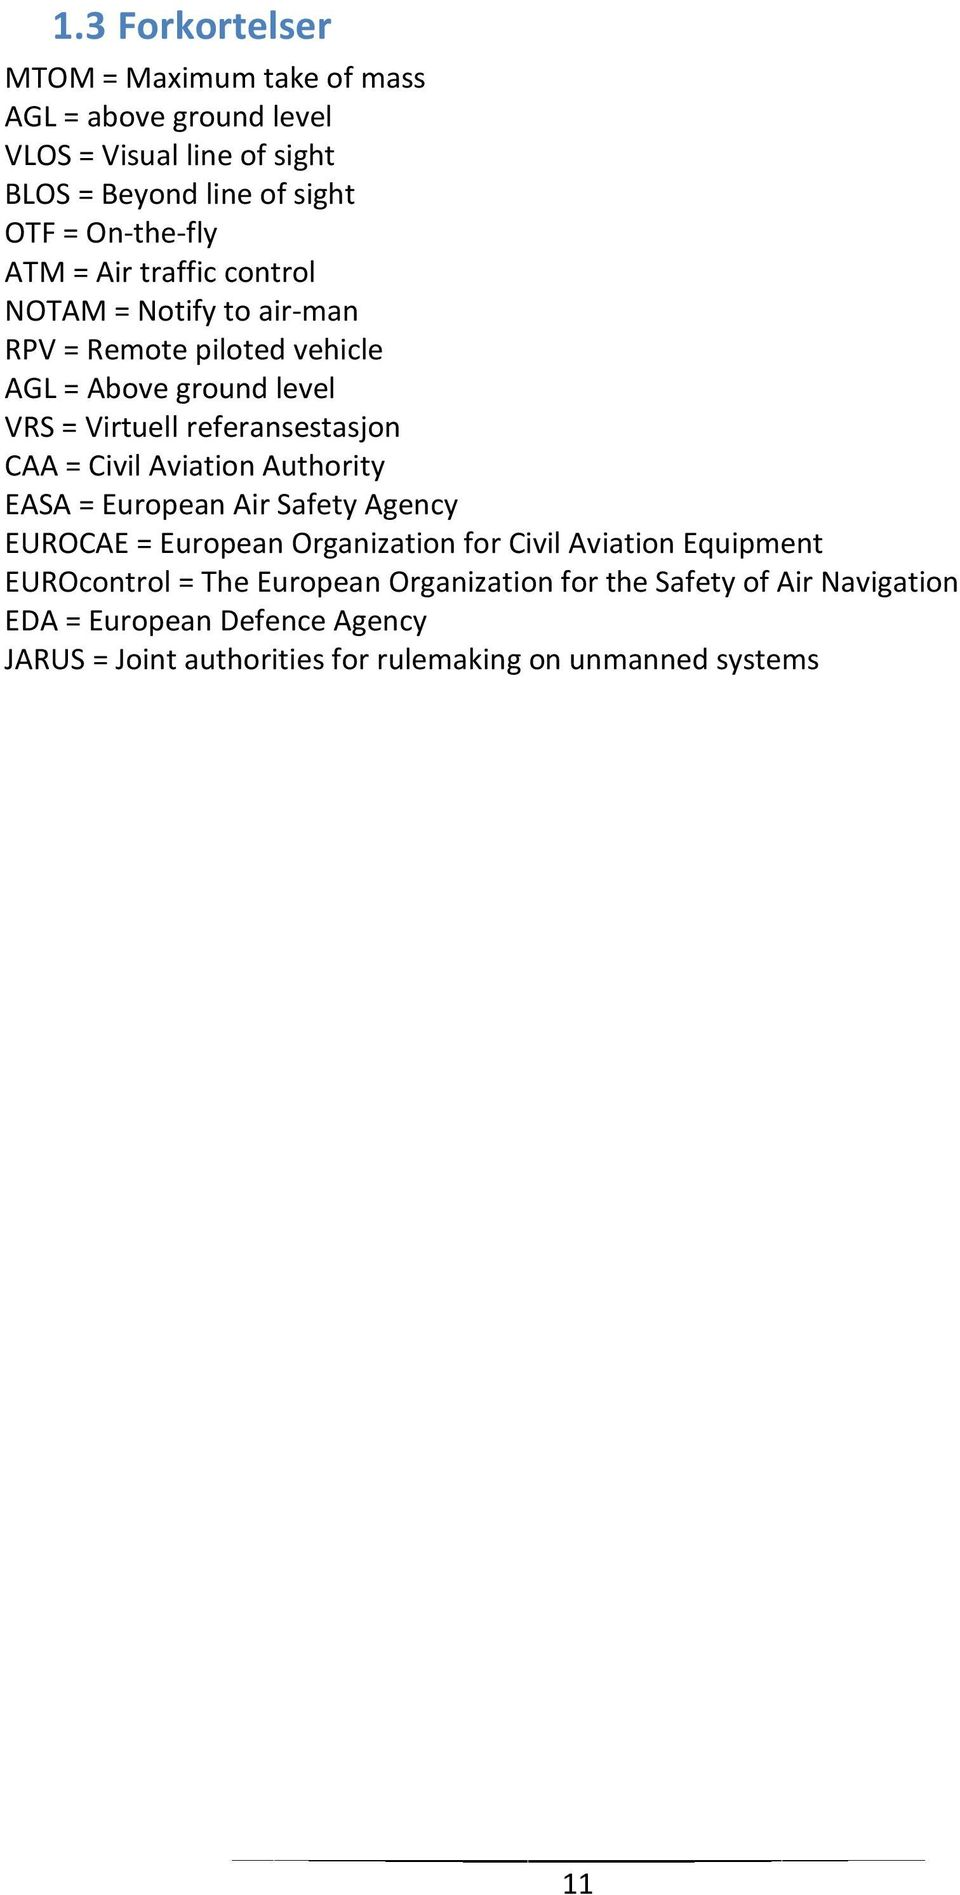 Civil Aviation Authority EASA = European Air Safety Agency EUROCAE = European Organization for Civil Aviation Equipment EUROcontrol = The